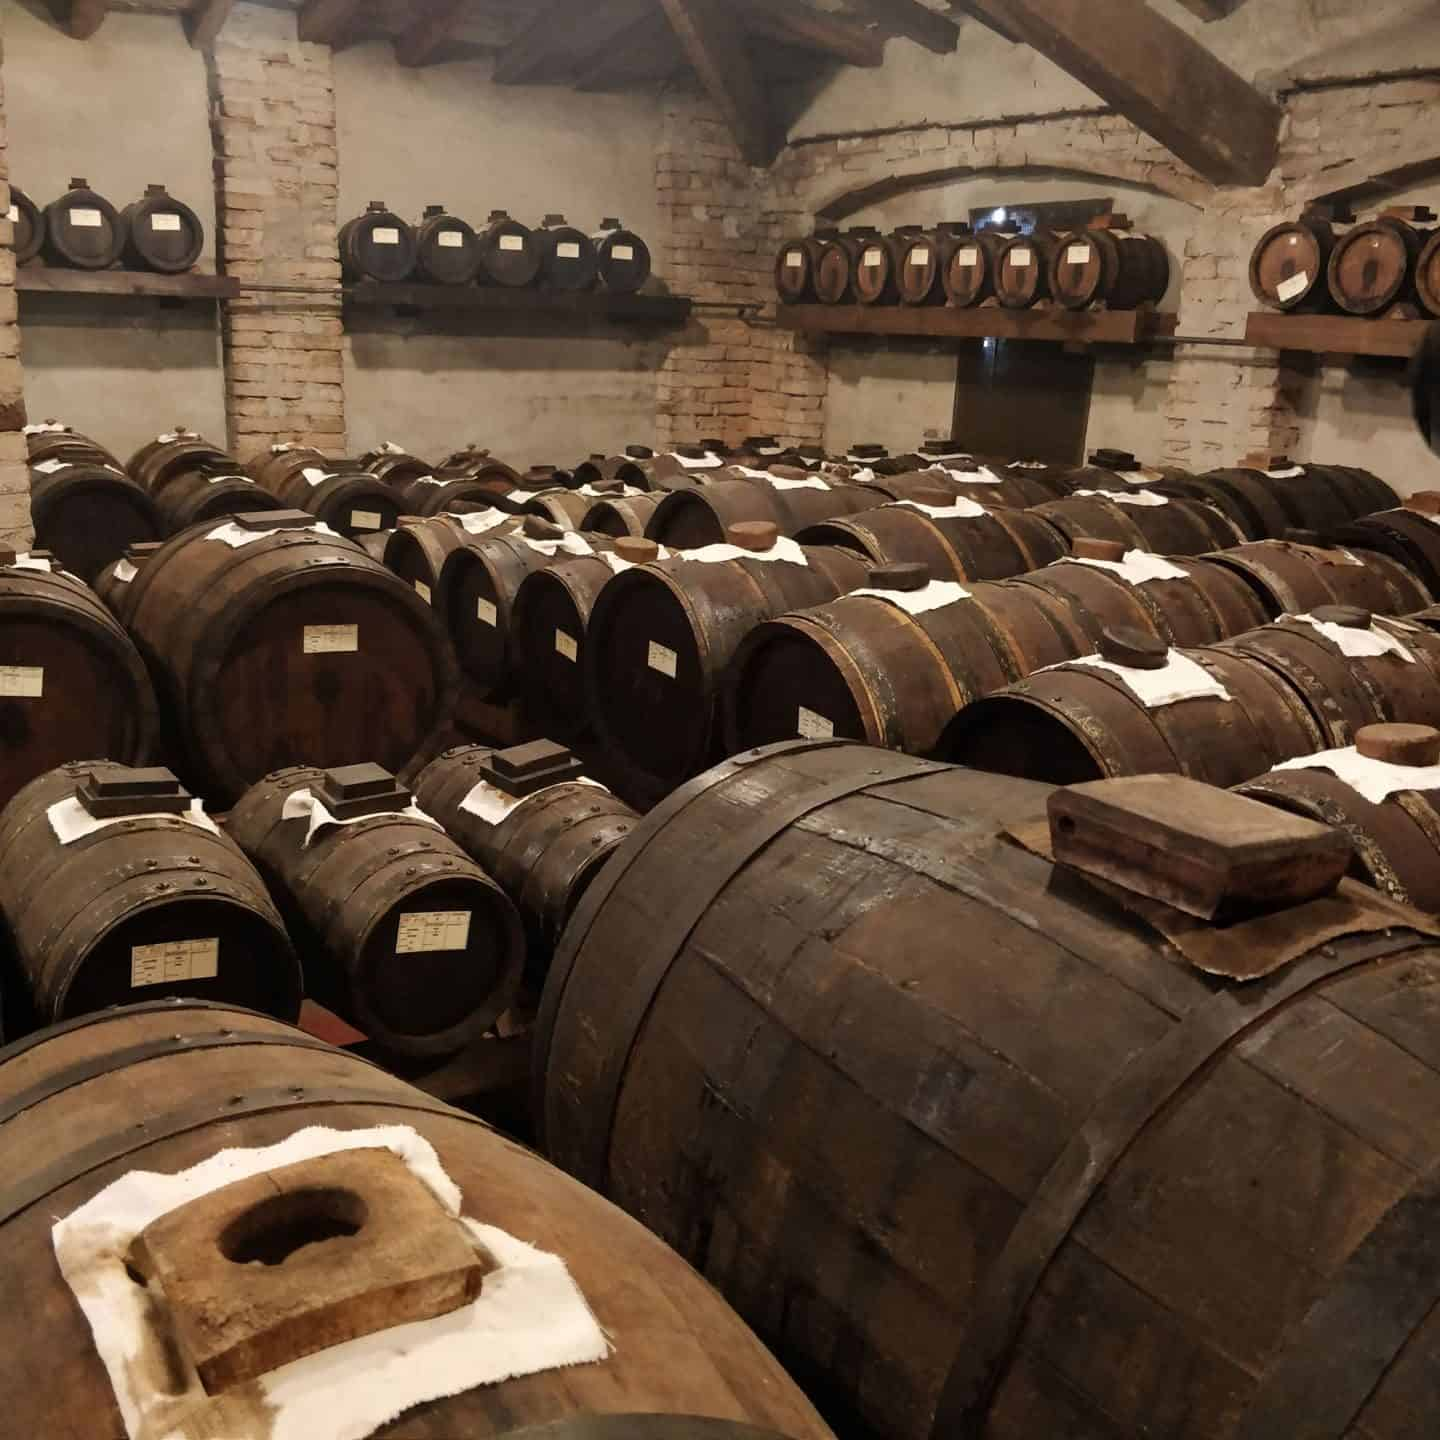 Casks of balsamic vinegar maturing in the loft space of a balsamic vinegar factory in Italy